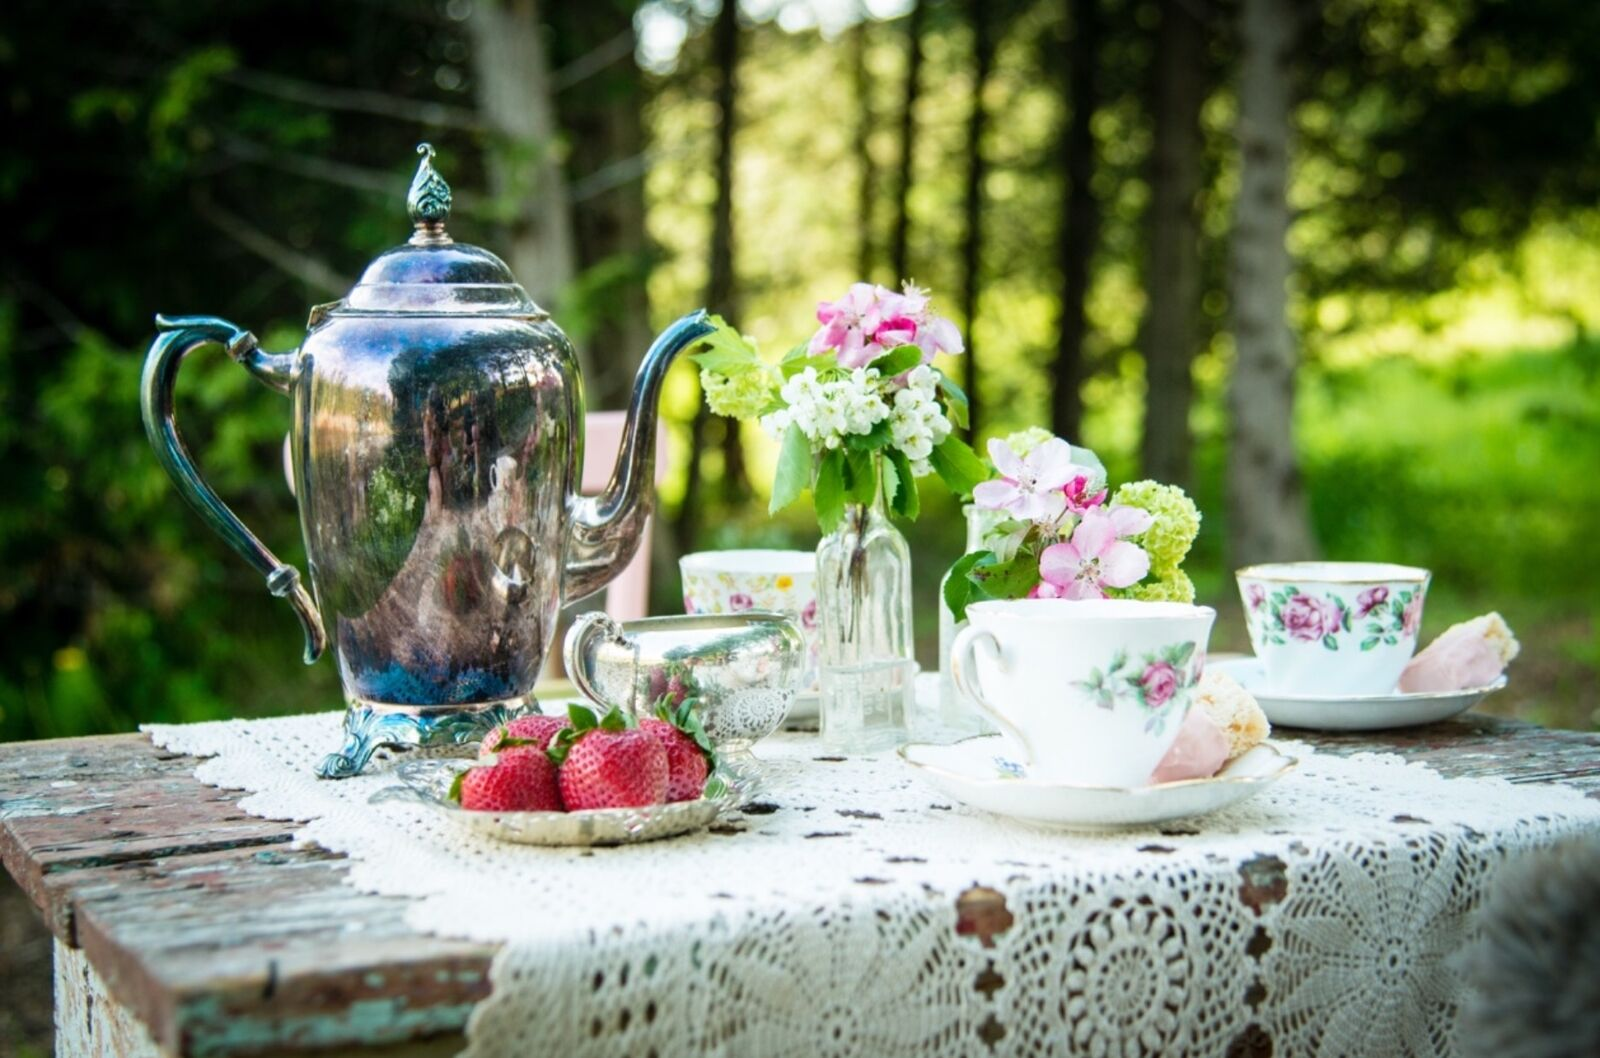 TEA FOR TWO AND MORE